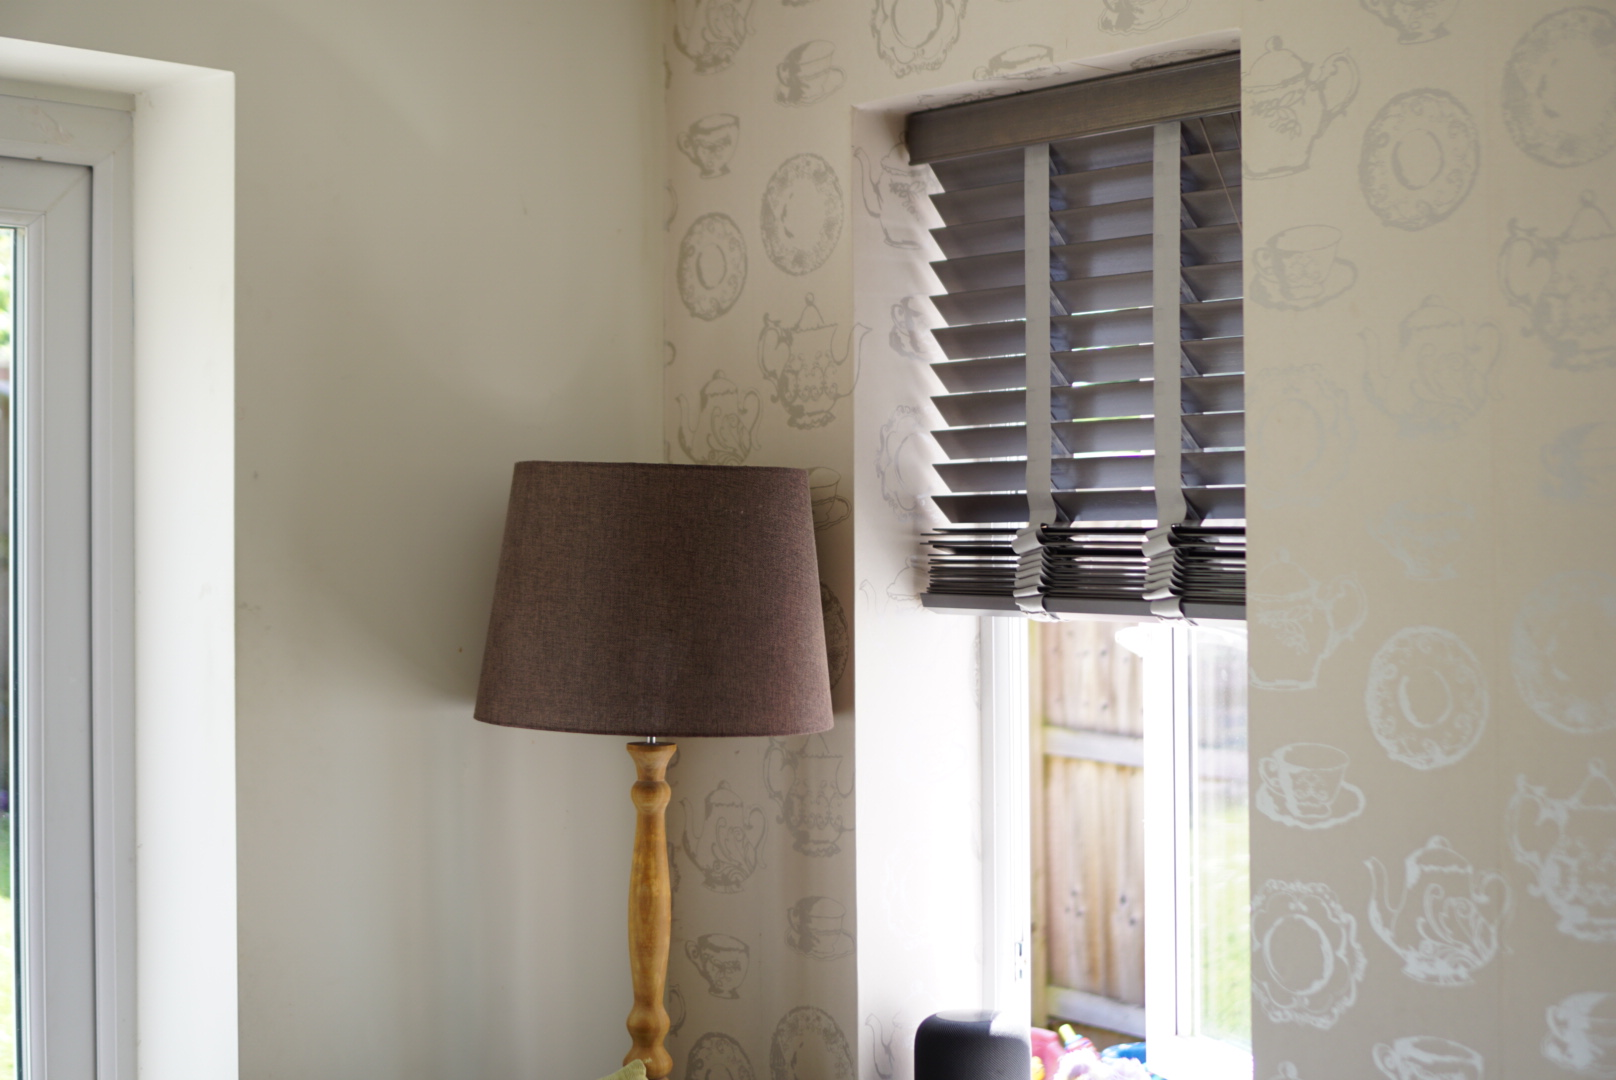 Picture of blinds in a home